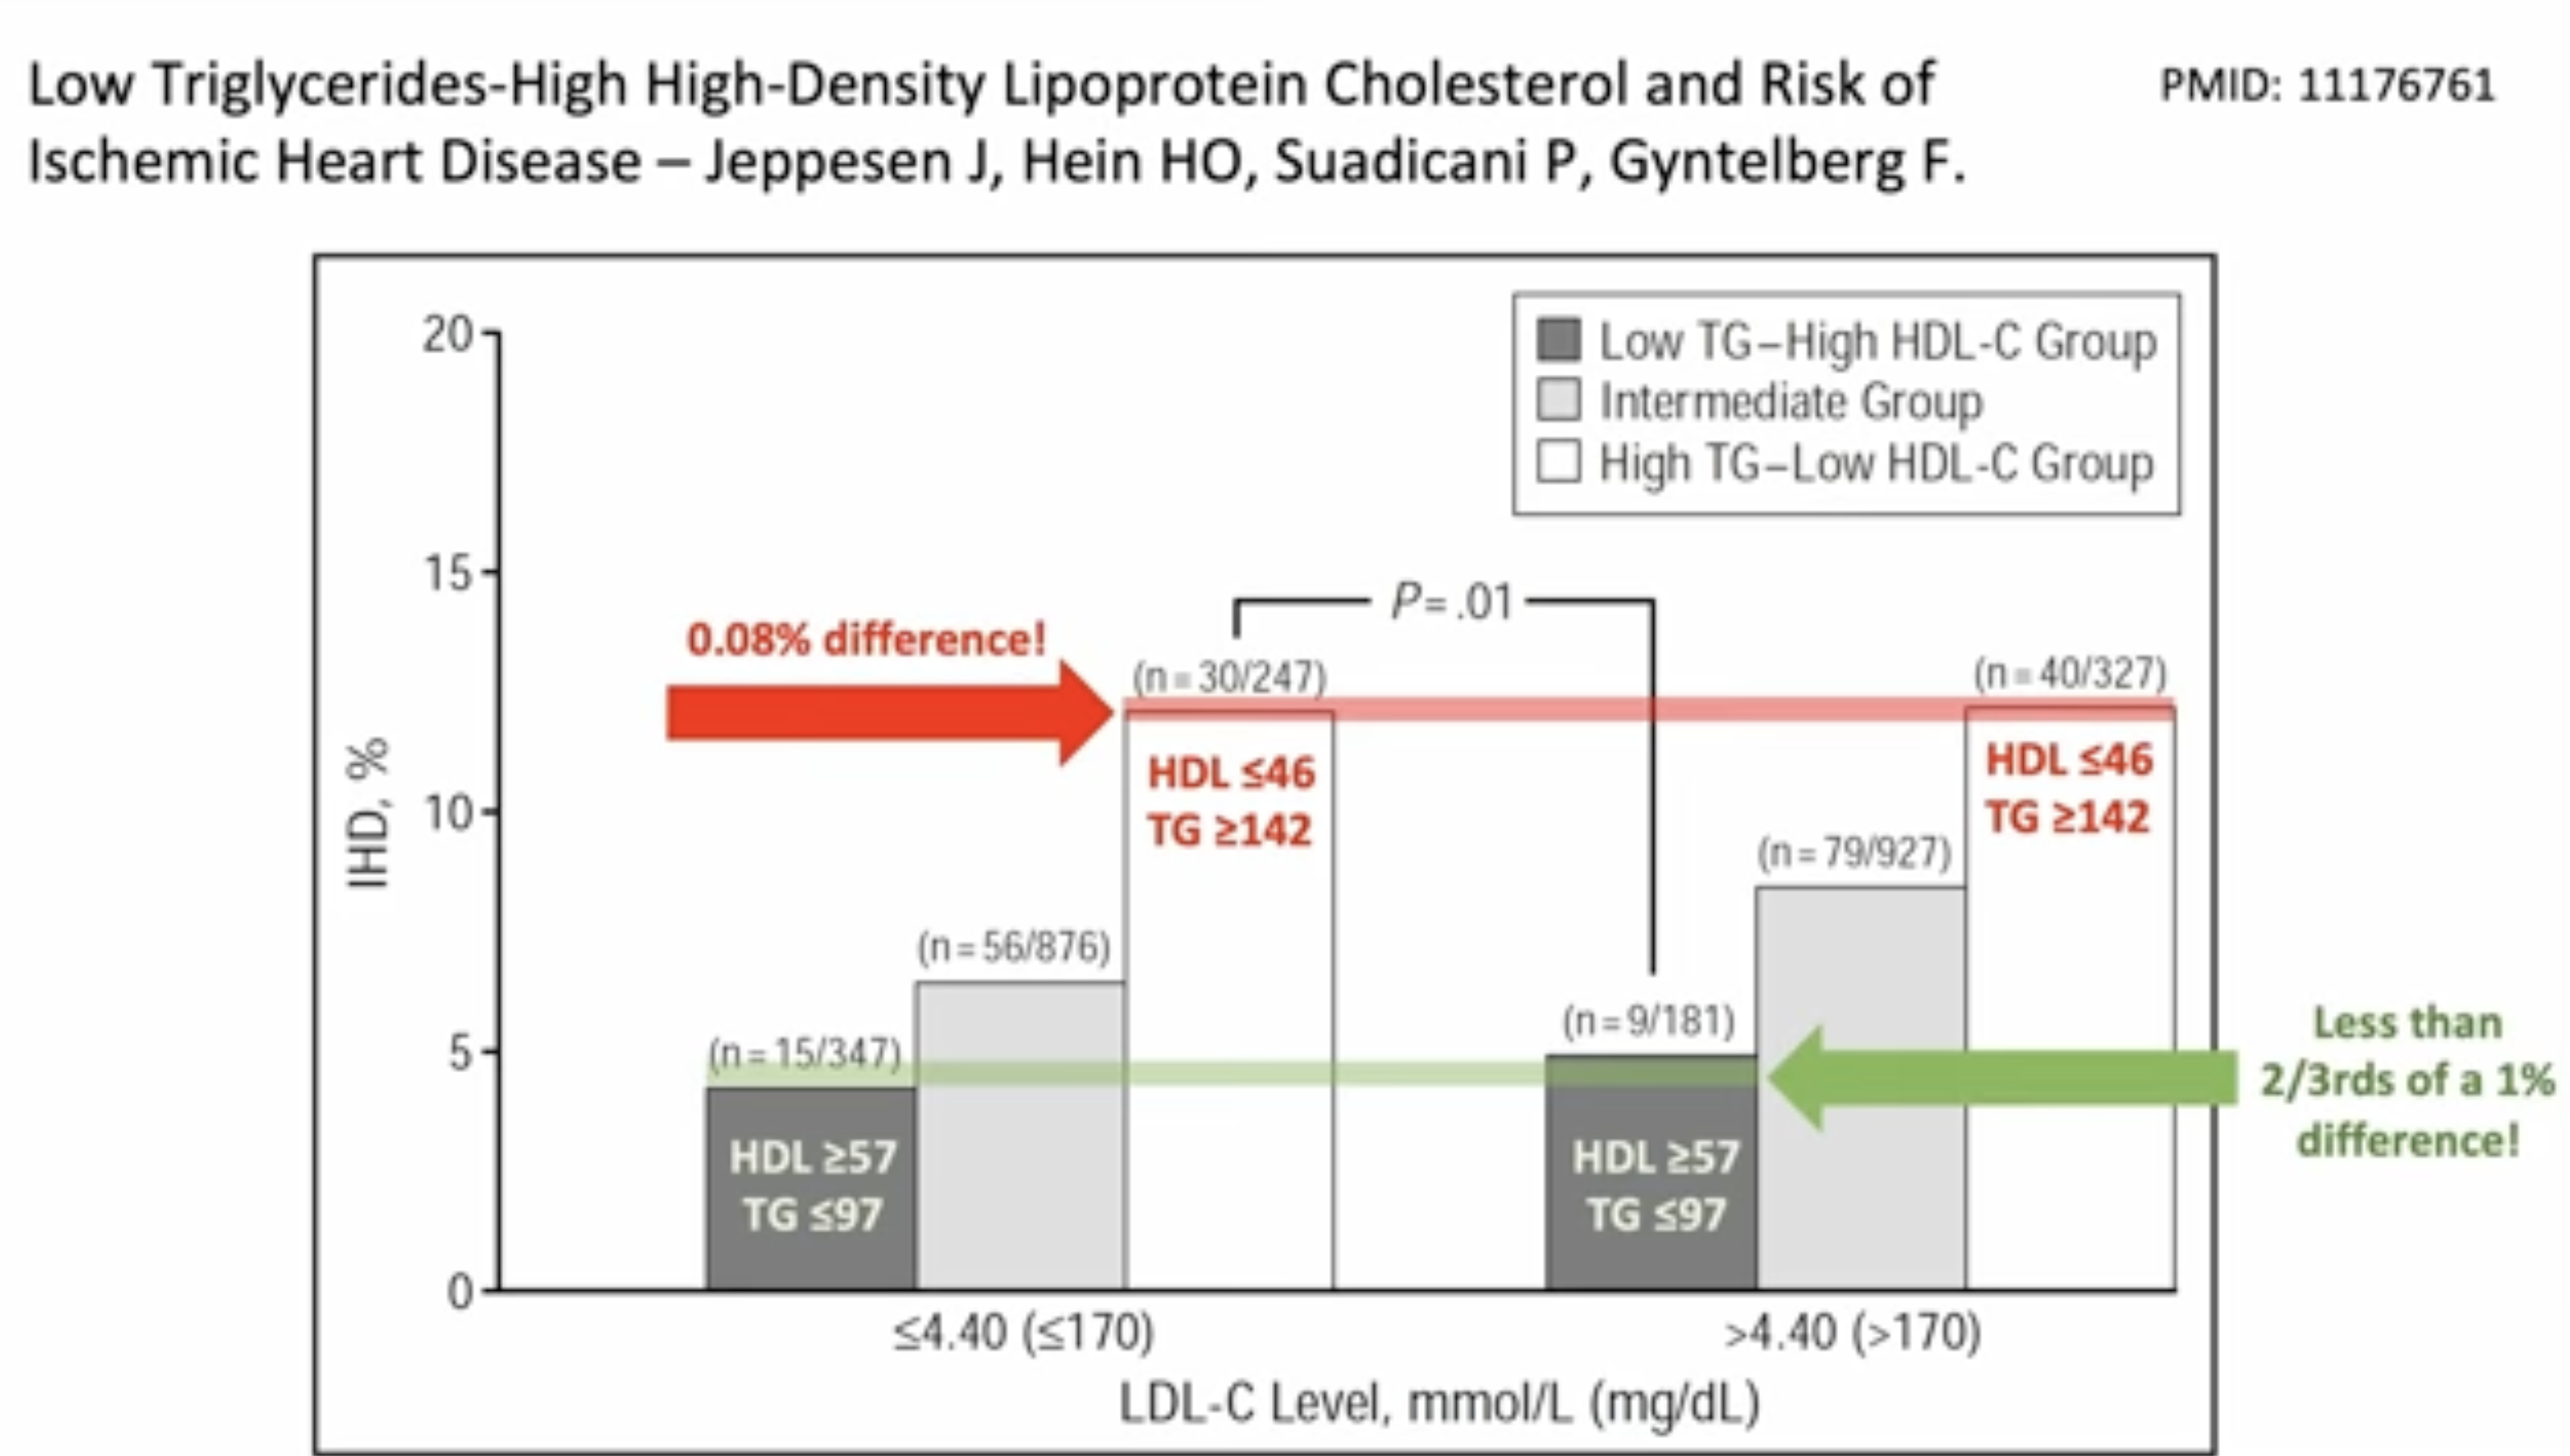 Low Triglycerides-High High-Desnity Lipoprotein Cholesterol and Risk of Ischemic Heart Disease